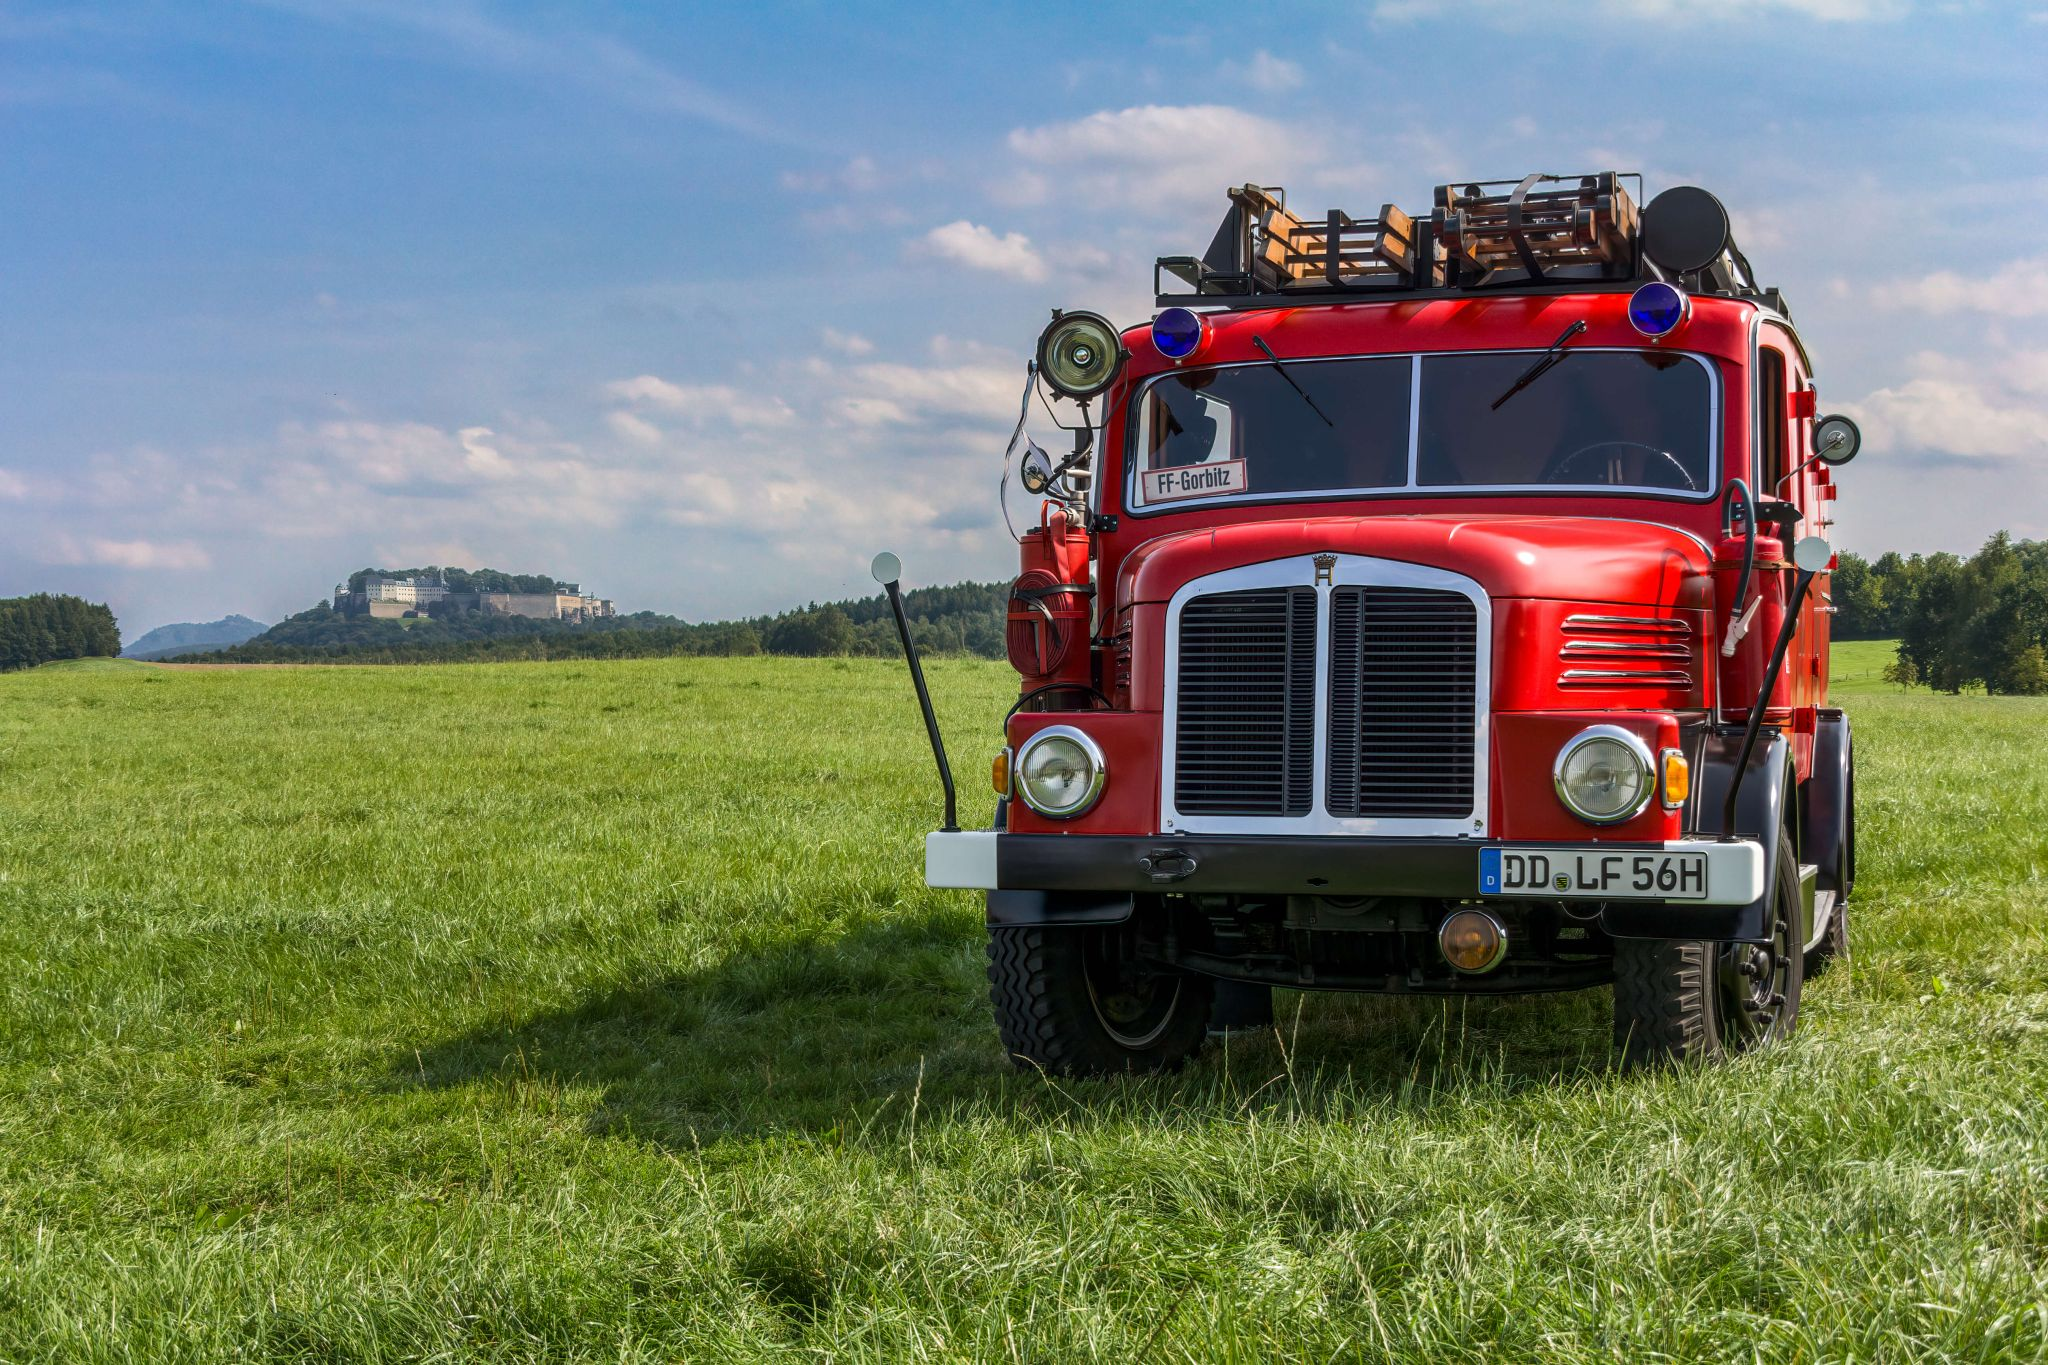 Koenigstein Fortress and historic fire truck, Germany